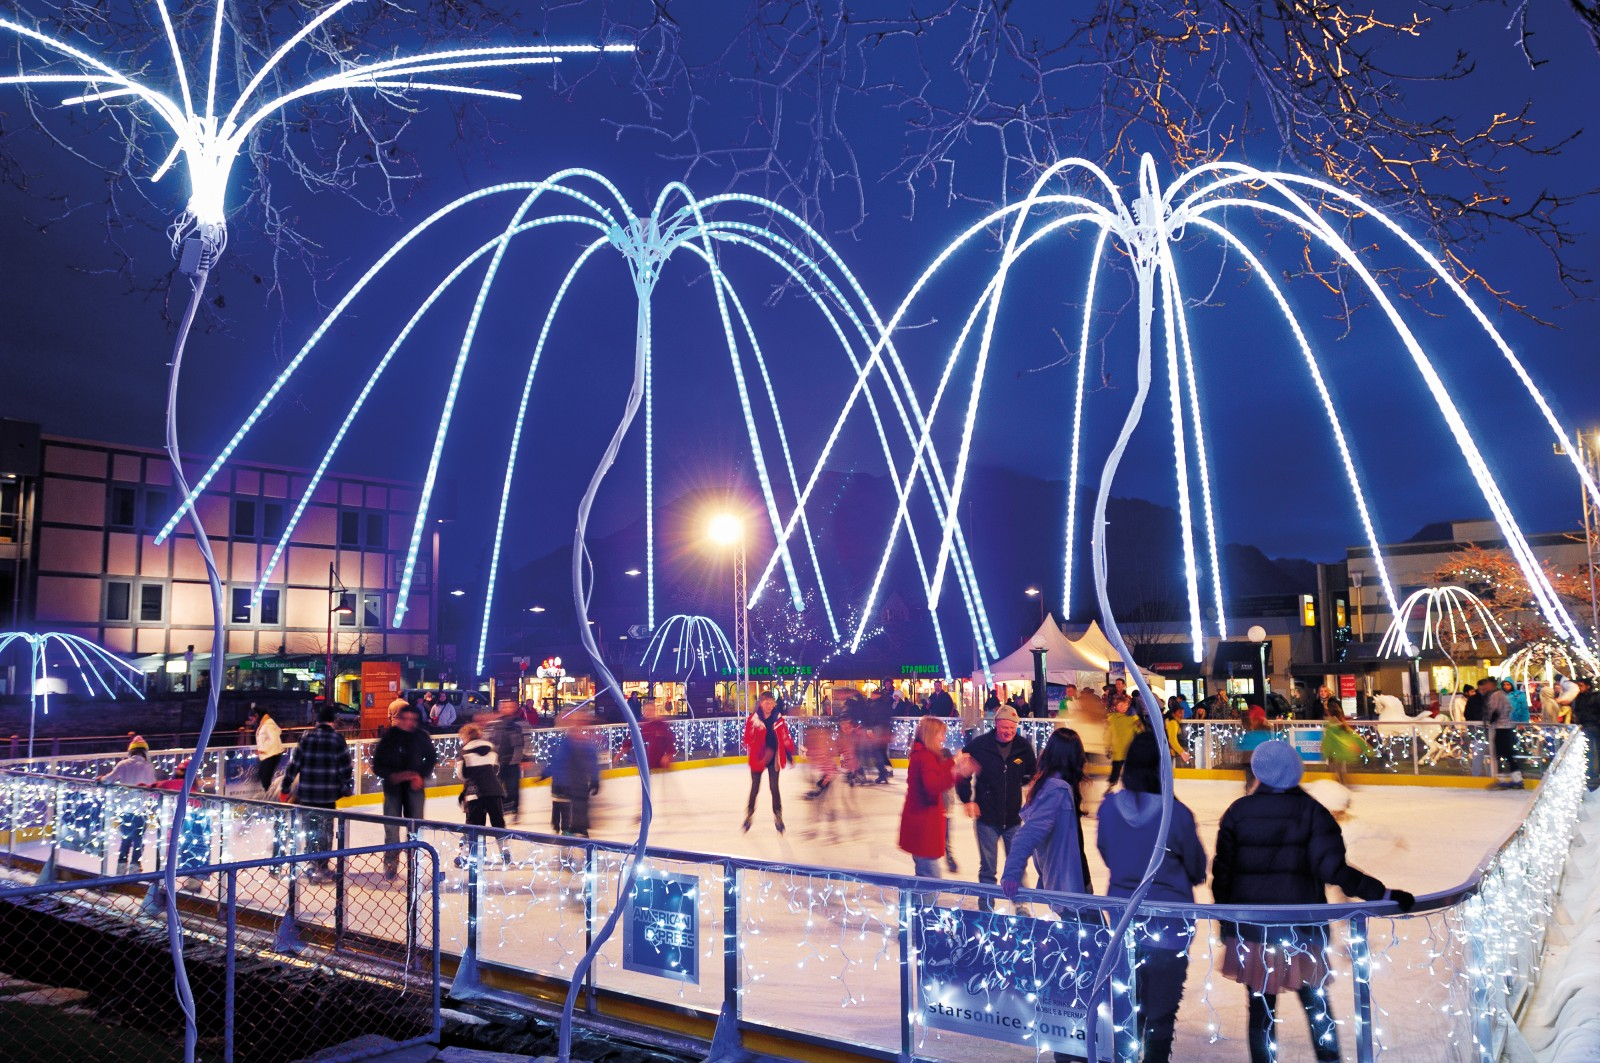 An outdoor skating rink, assembled on Queenstown's Village Green, was a focus of the 2011 Winter Festival. Brought in from the United States, the 15 sqm rink was filled with 20,000 litres of water, frozen over three days and bedecked with fairy lights and neon to bring a sense of winter to a town unseasonably starved of snow.